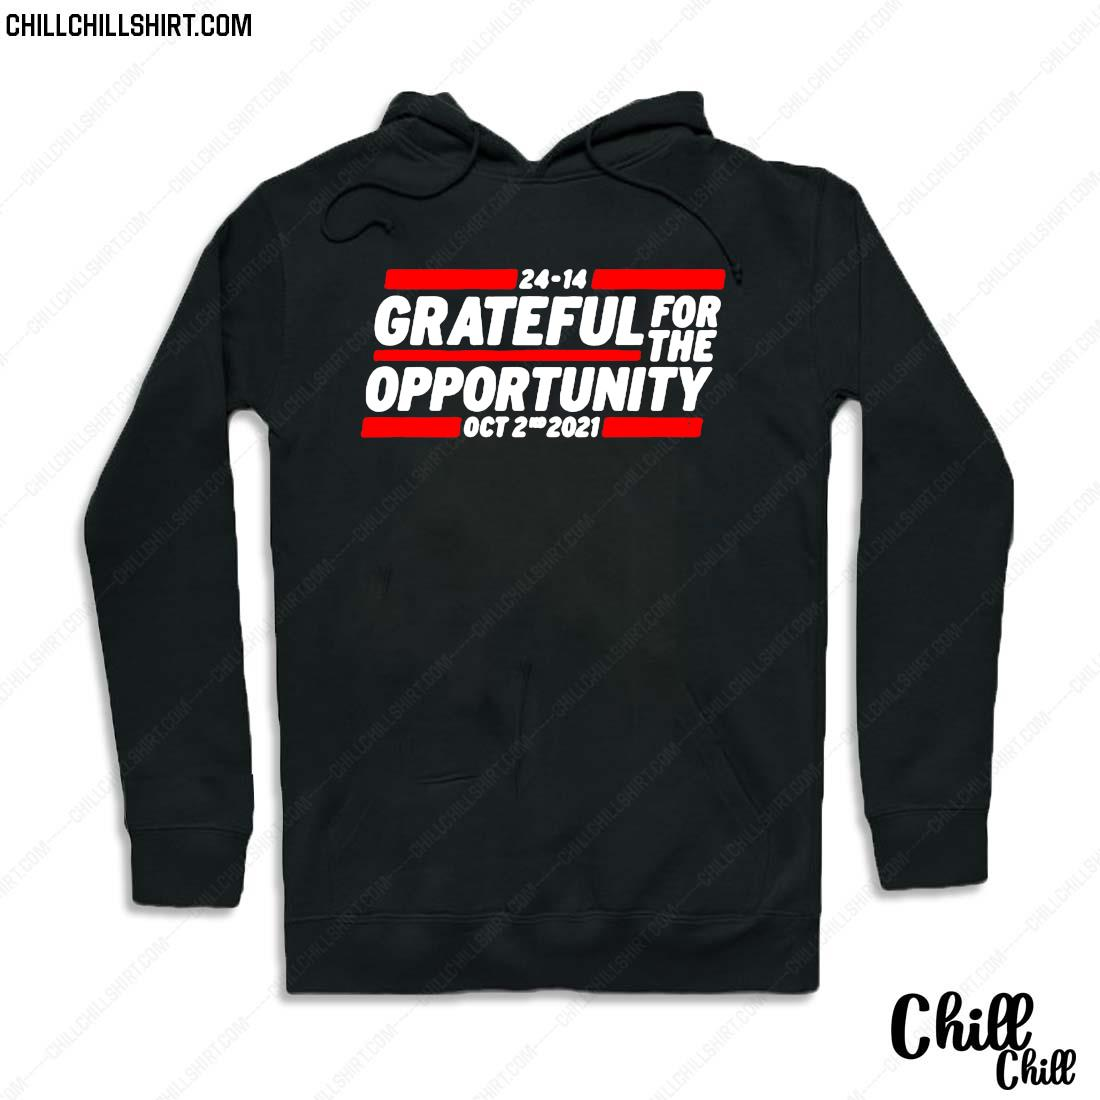 24 14 Grateful For The Opportunity Oct 2nd 2021 Shirt Hoodie